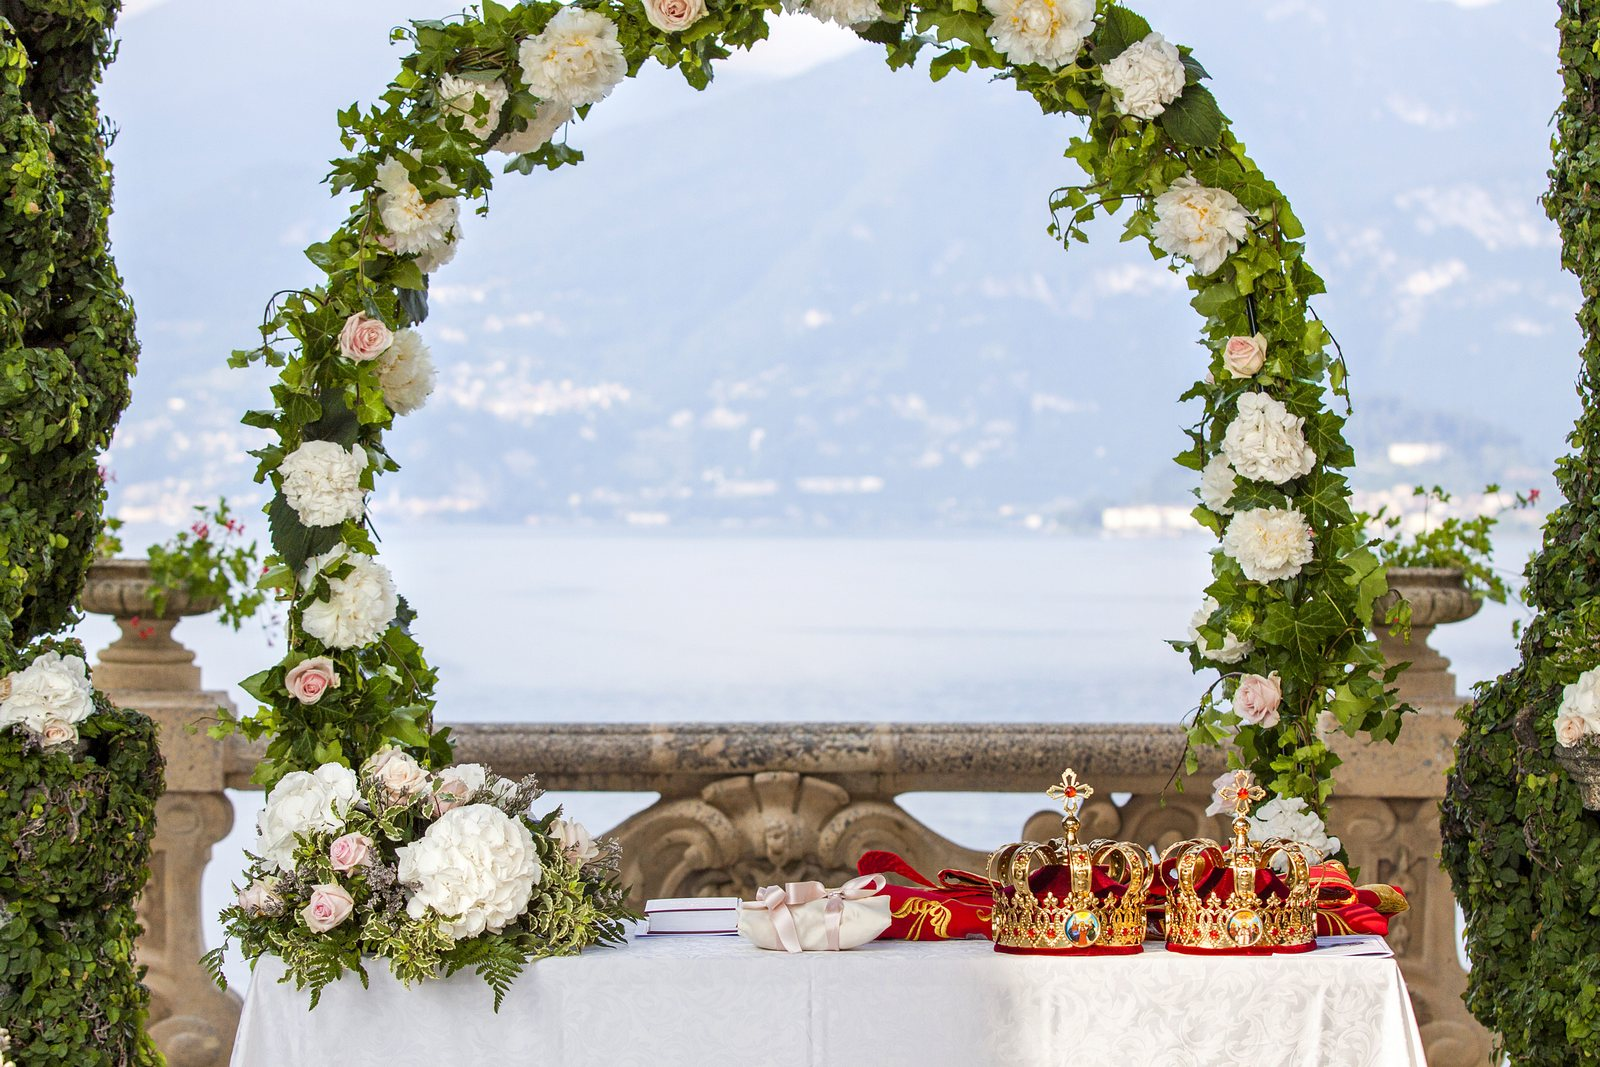 Flower arch in VIlla Balbianello